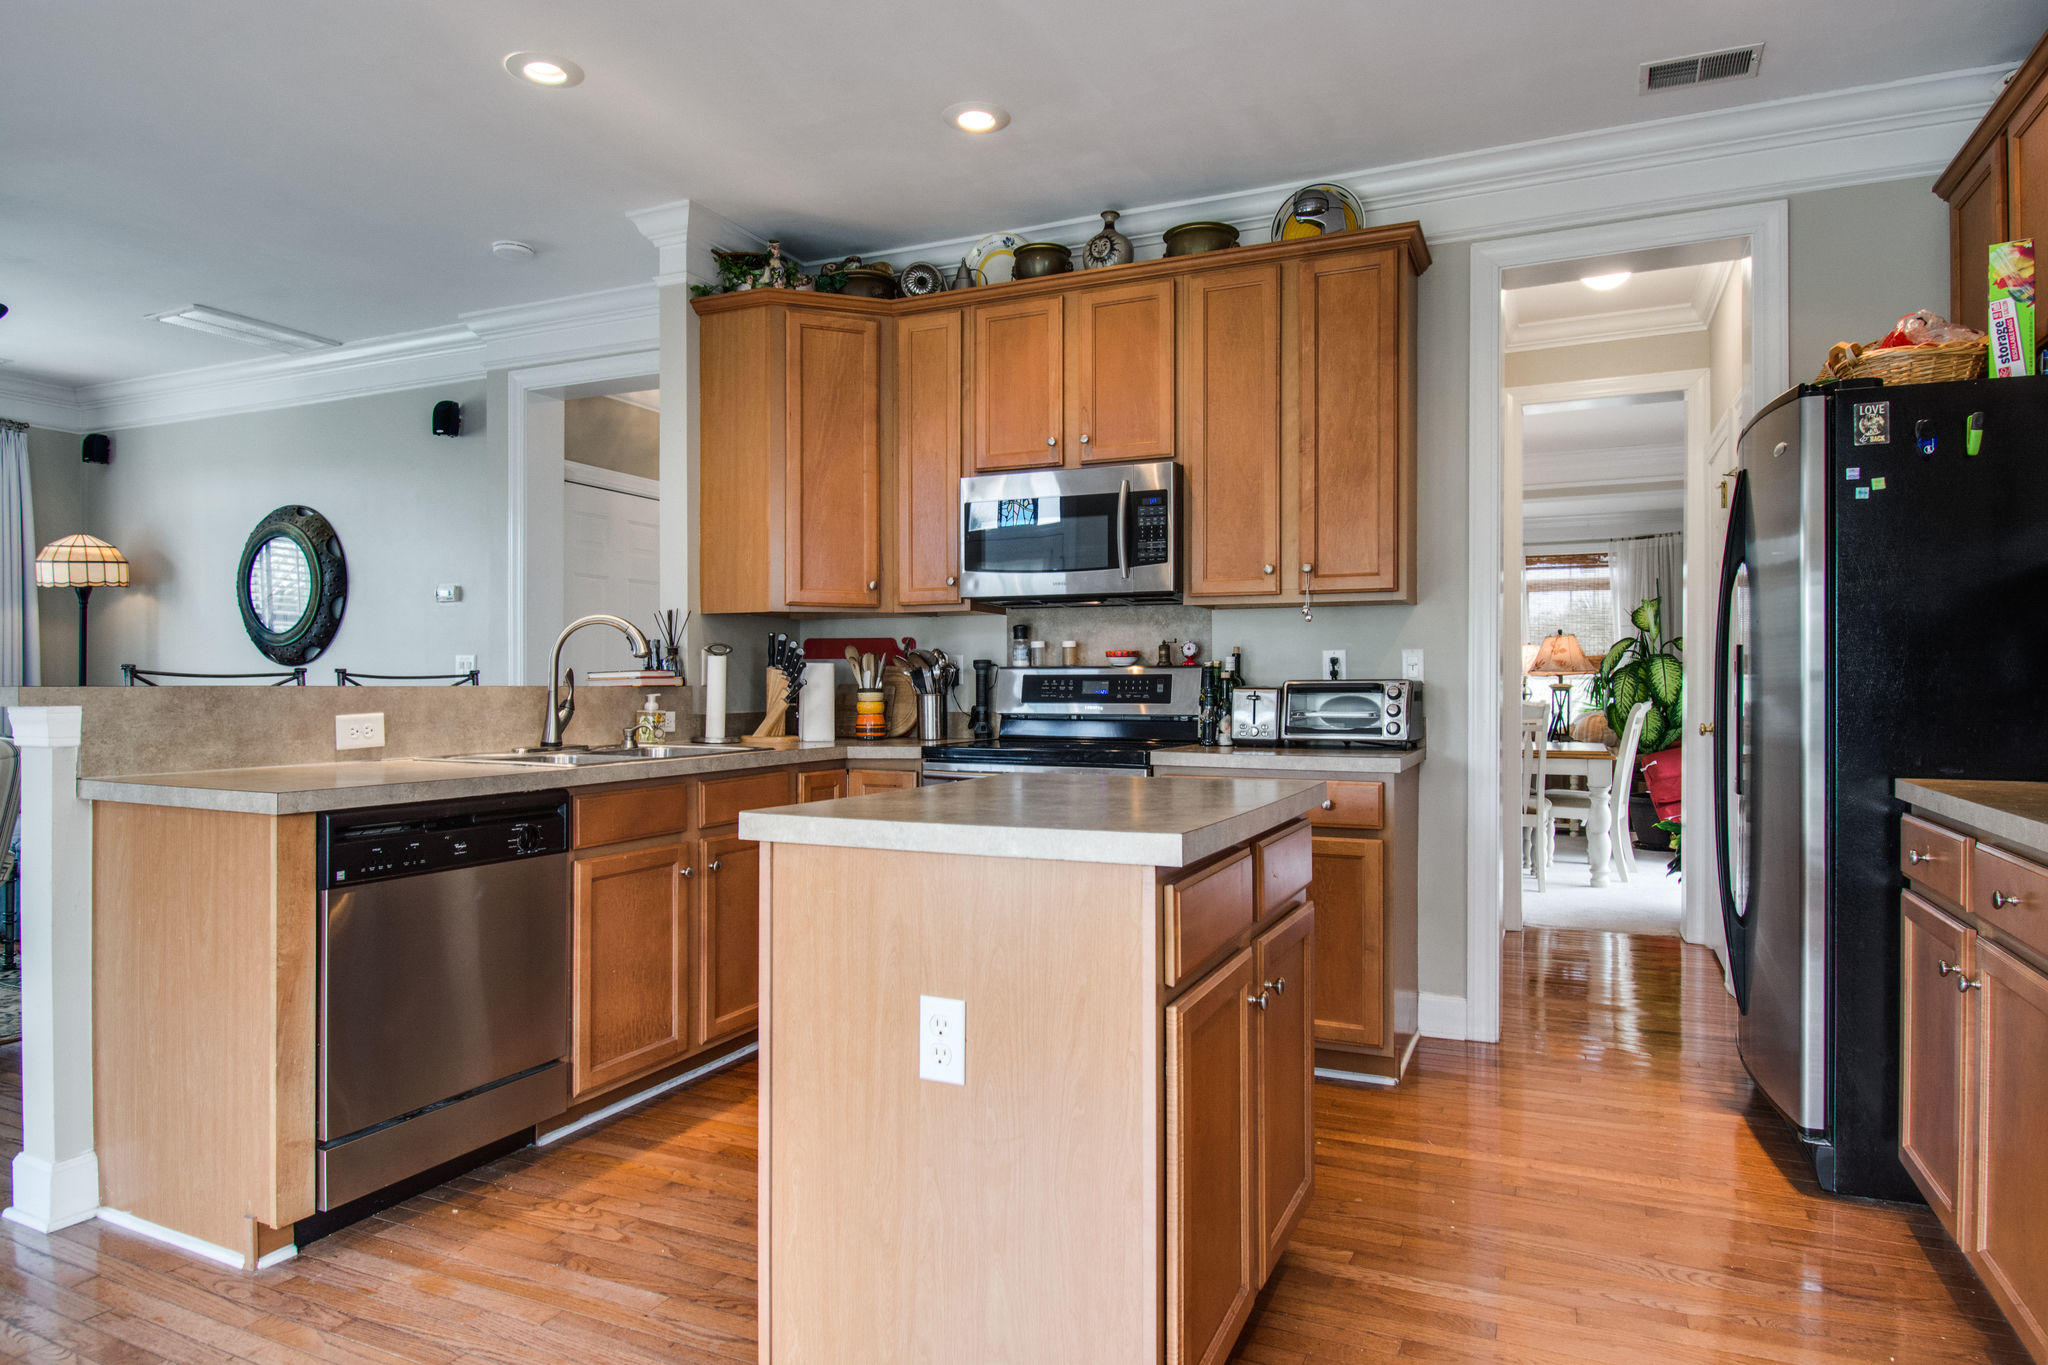 Rivertowne On The Wando Homes For Sale - 2226 Marsh, Mount Pleasant, SC - 28